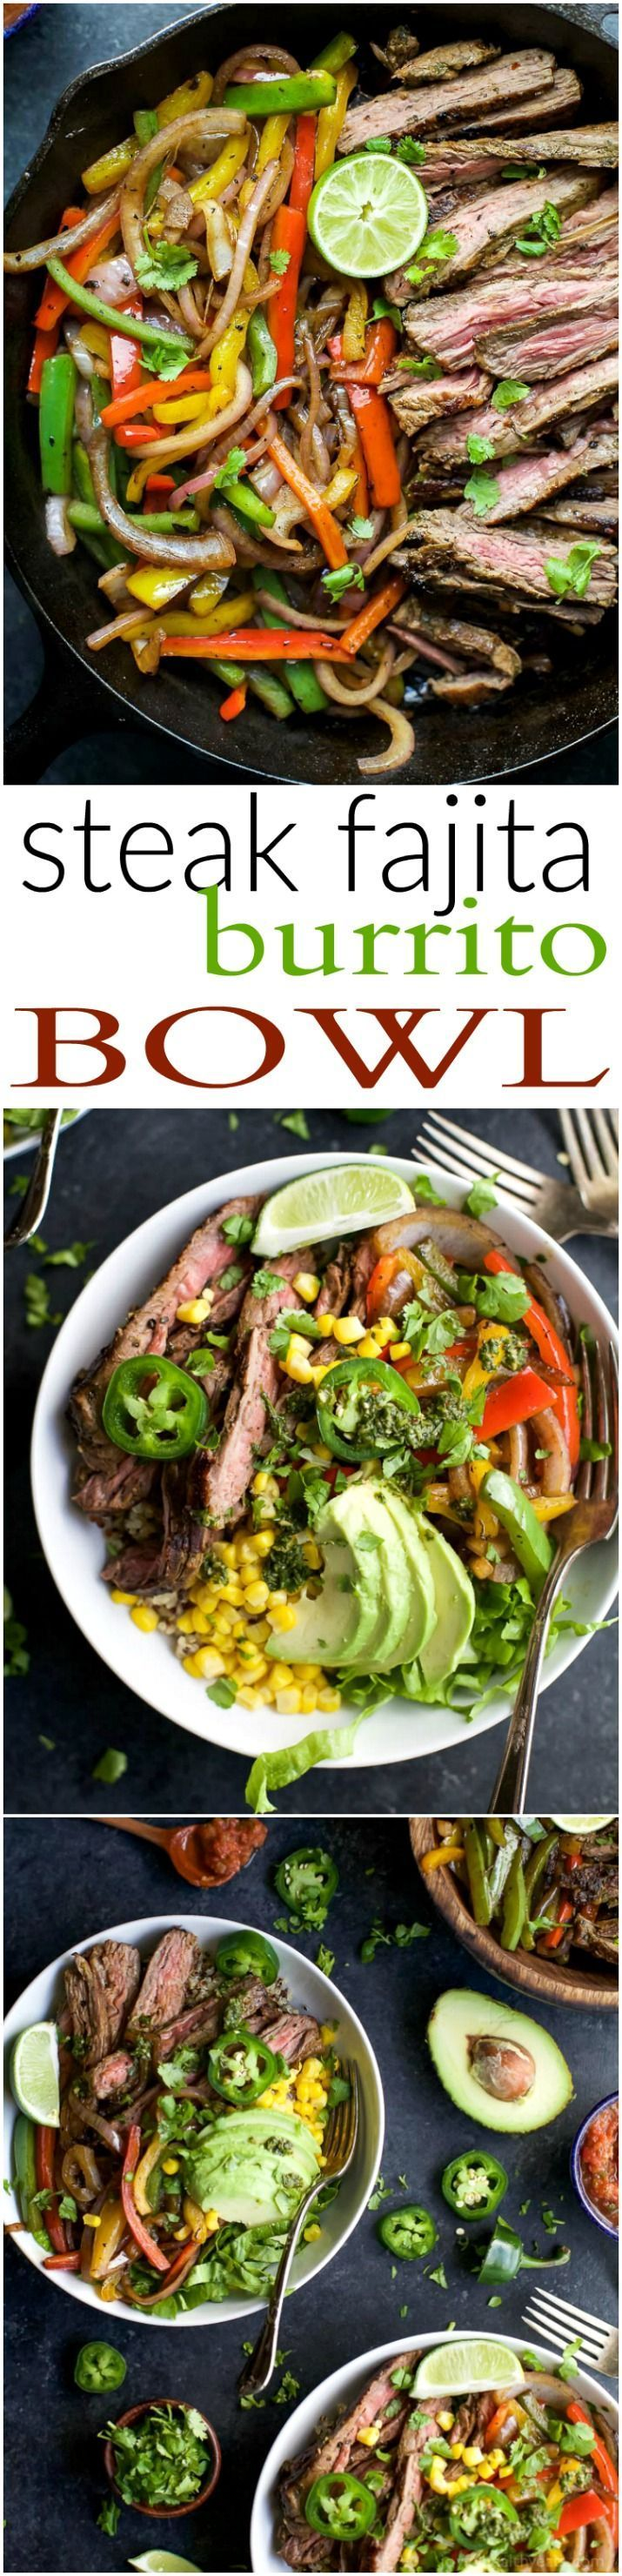 Homemade STEAK FAJITA BURRITO BOWLS filled with quinoa, fajita steak, avocado and a cilantro lime chimichurri sauce you'll adore. This quick Burrito Bowl is done in 30 minutes and is sure to be a favorite! | http://joyfulhealthyeats.com | Gluten Free Recipes